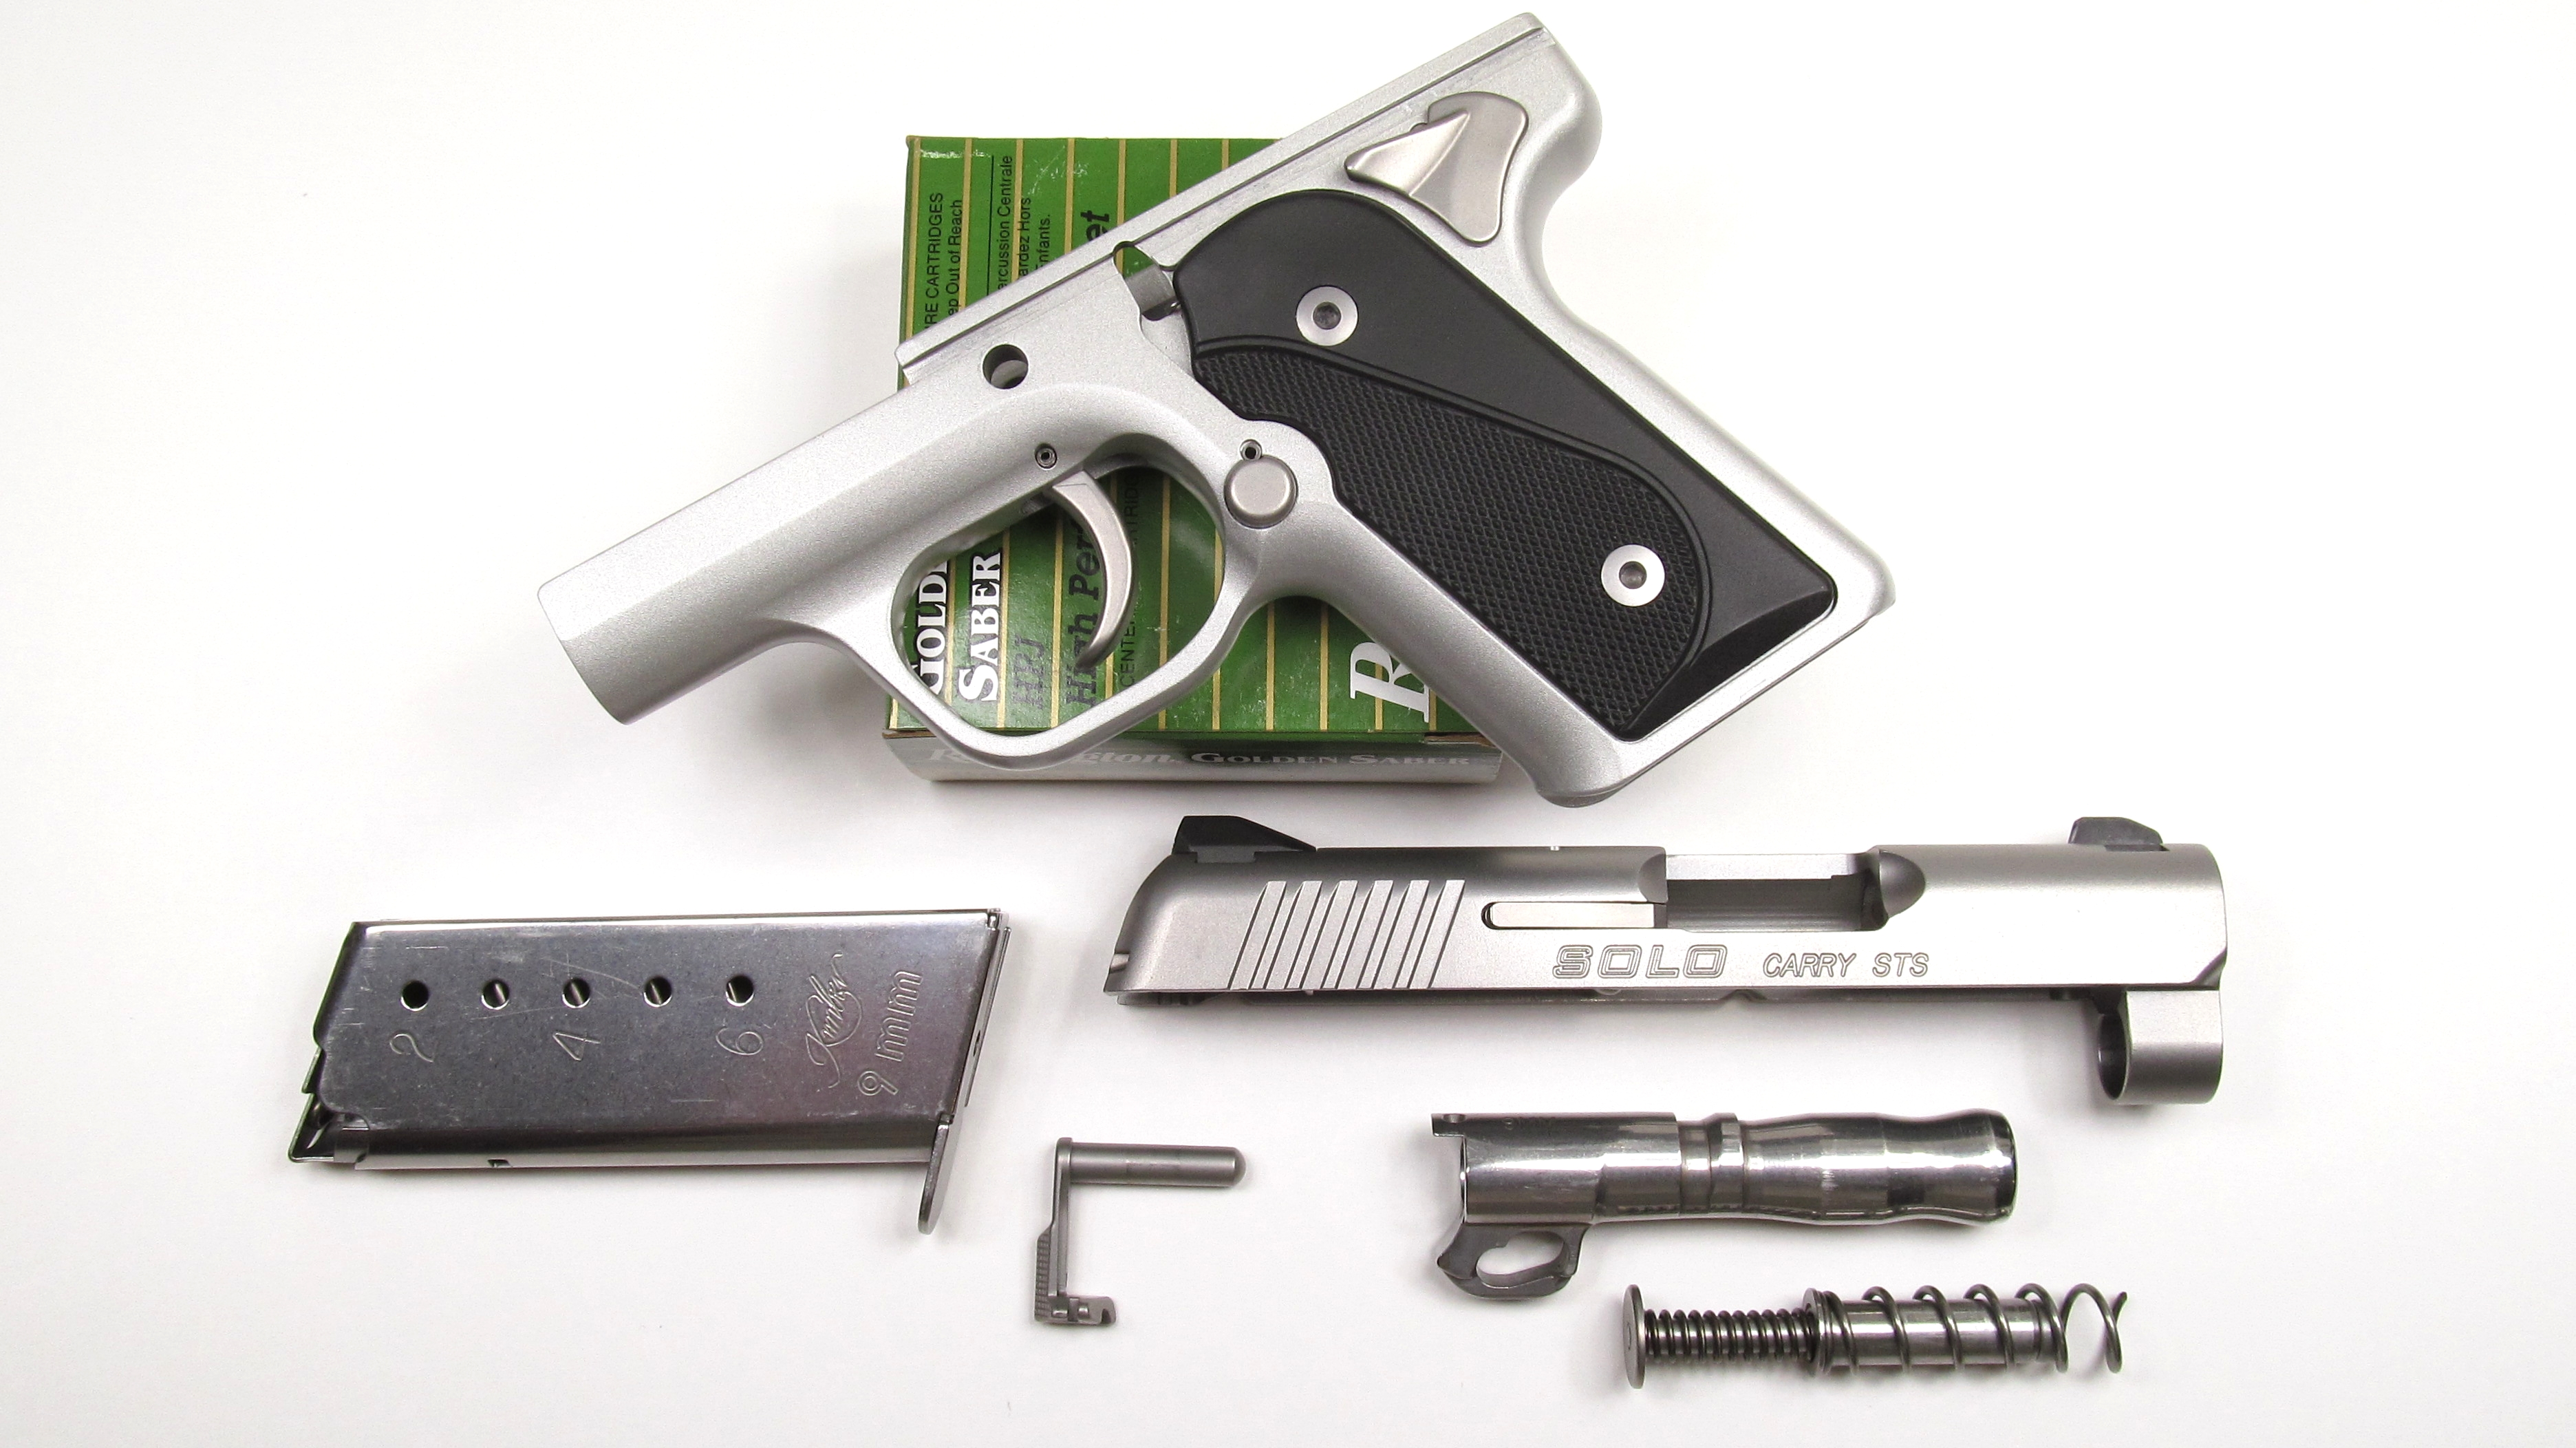 kimber solo carry stainless pocket carry without compromises rh gunsamerica com Kimber Micro 9 Kimber 1911